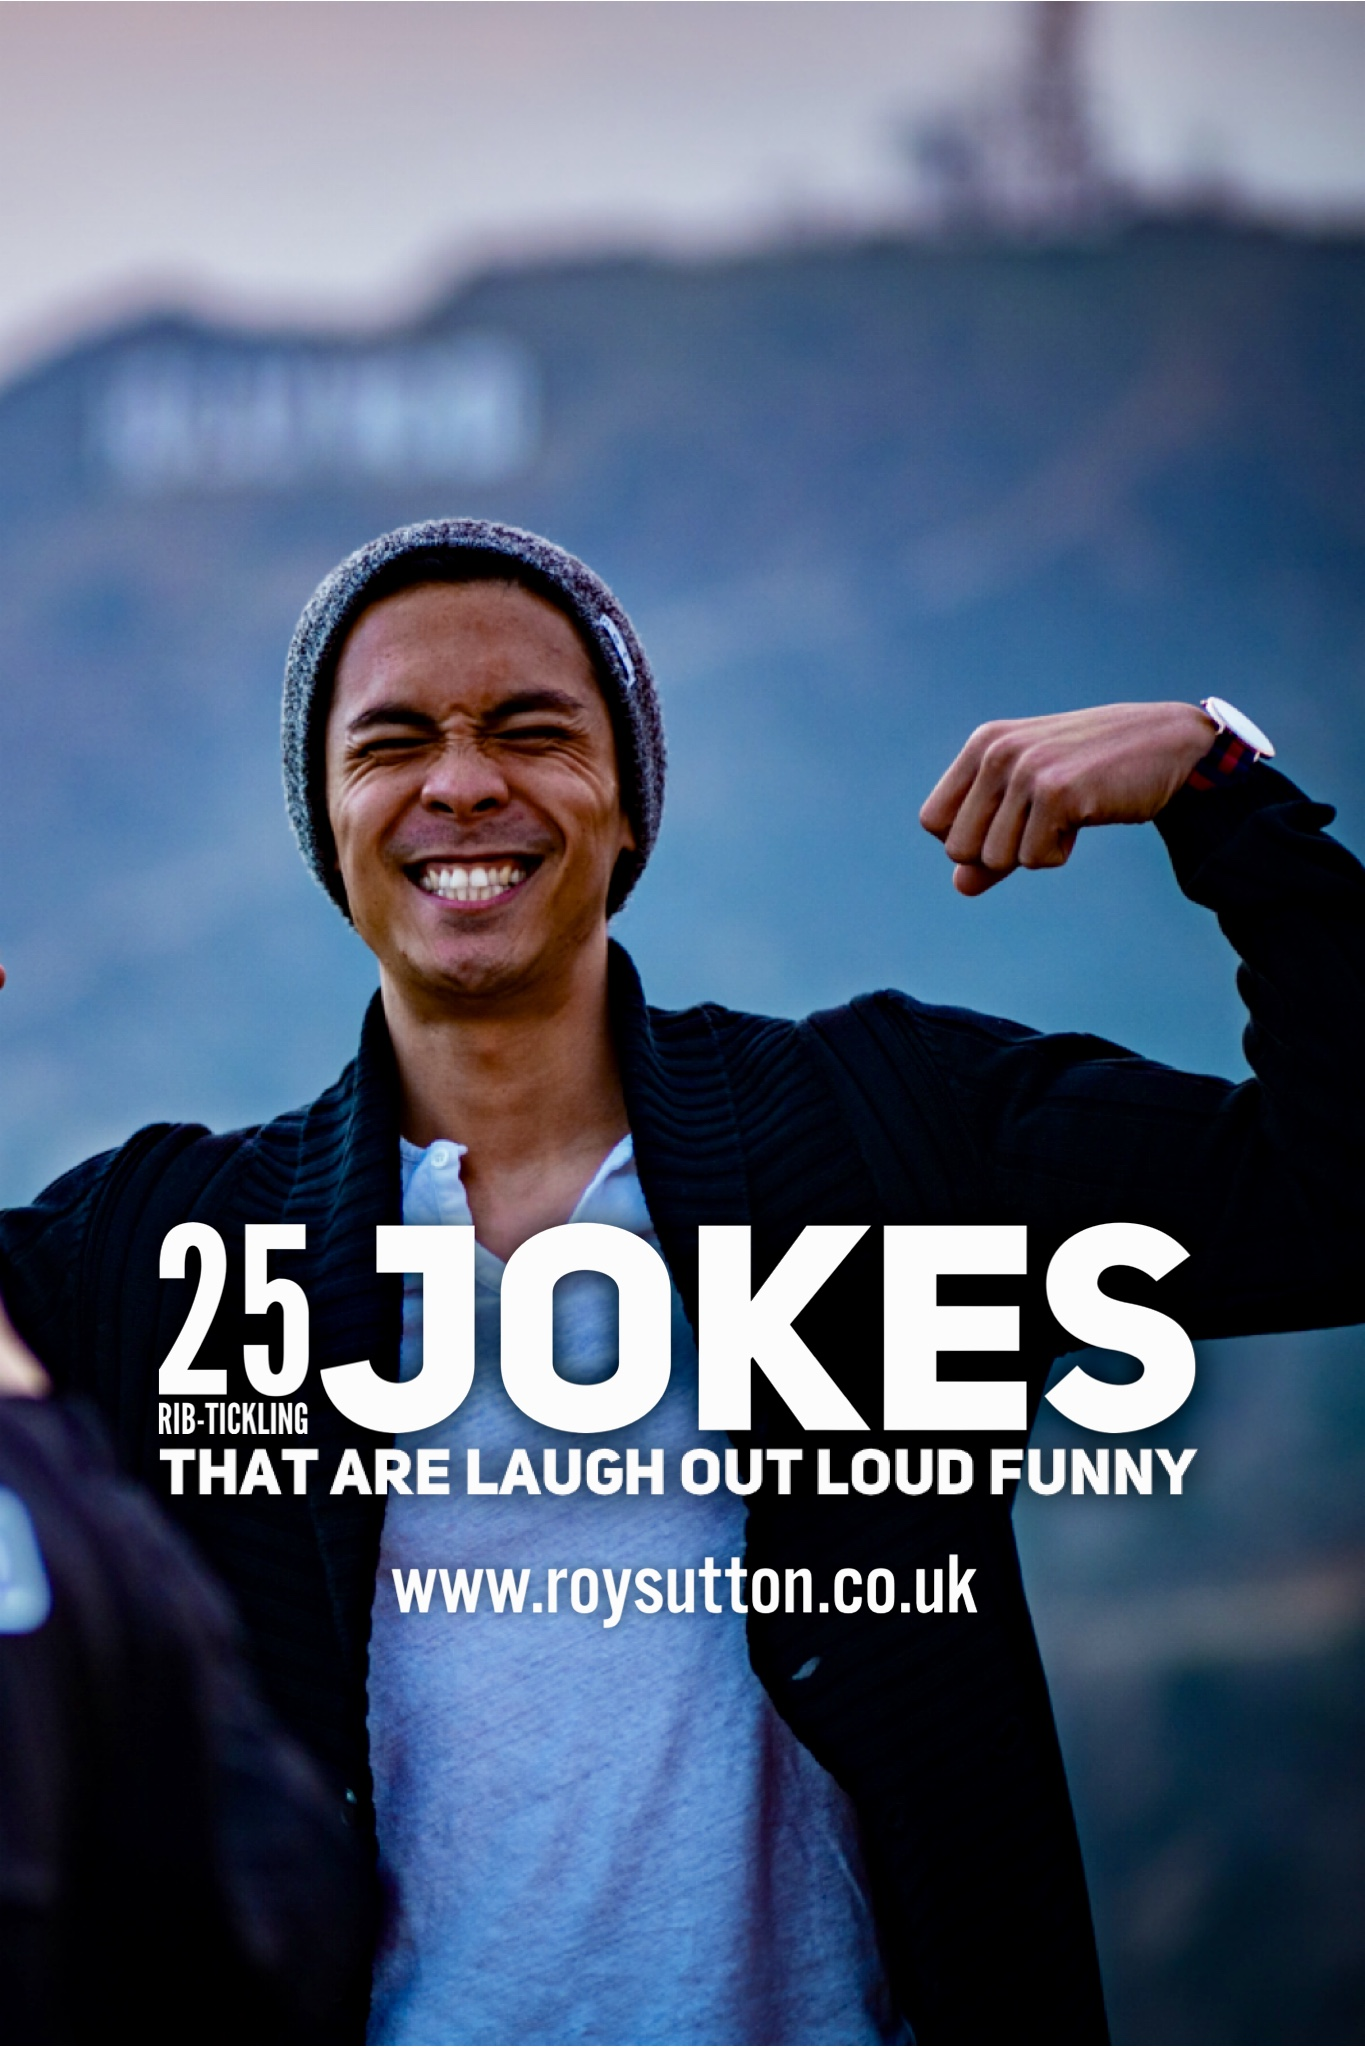 25 rib-tickling jokes that are laugh out loud funny - Roy Sutton